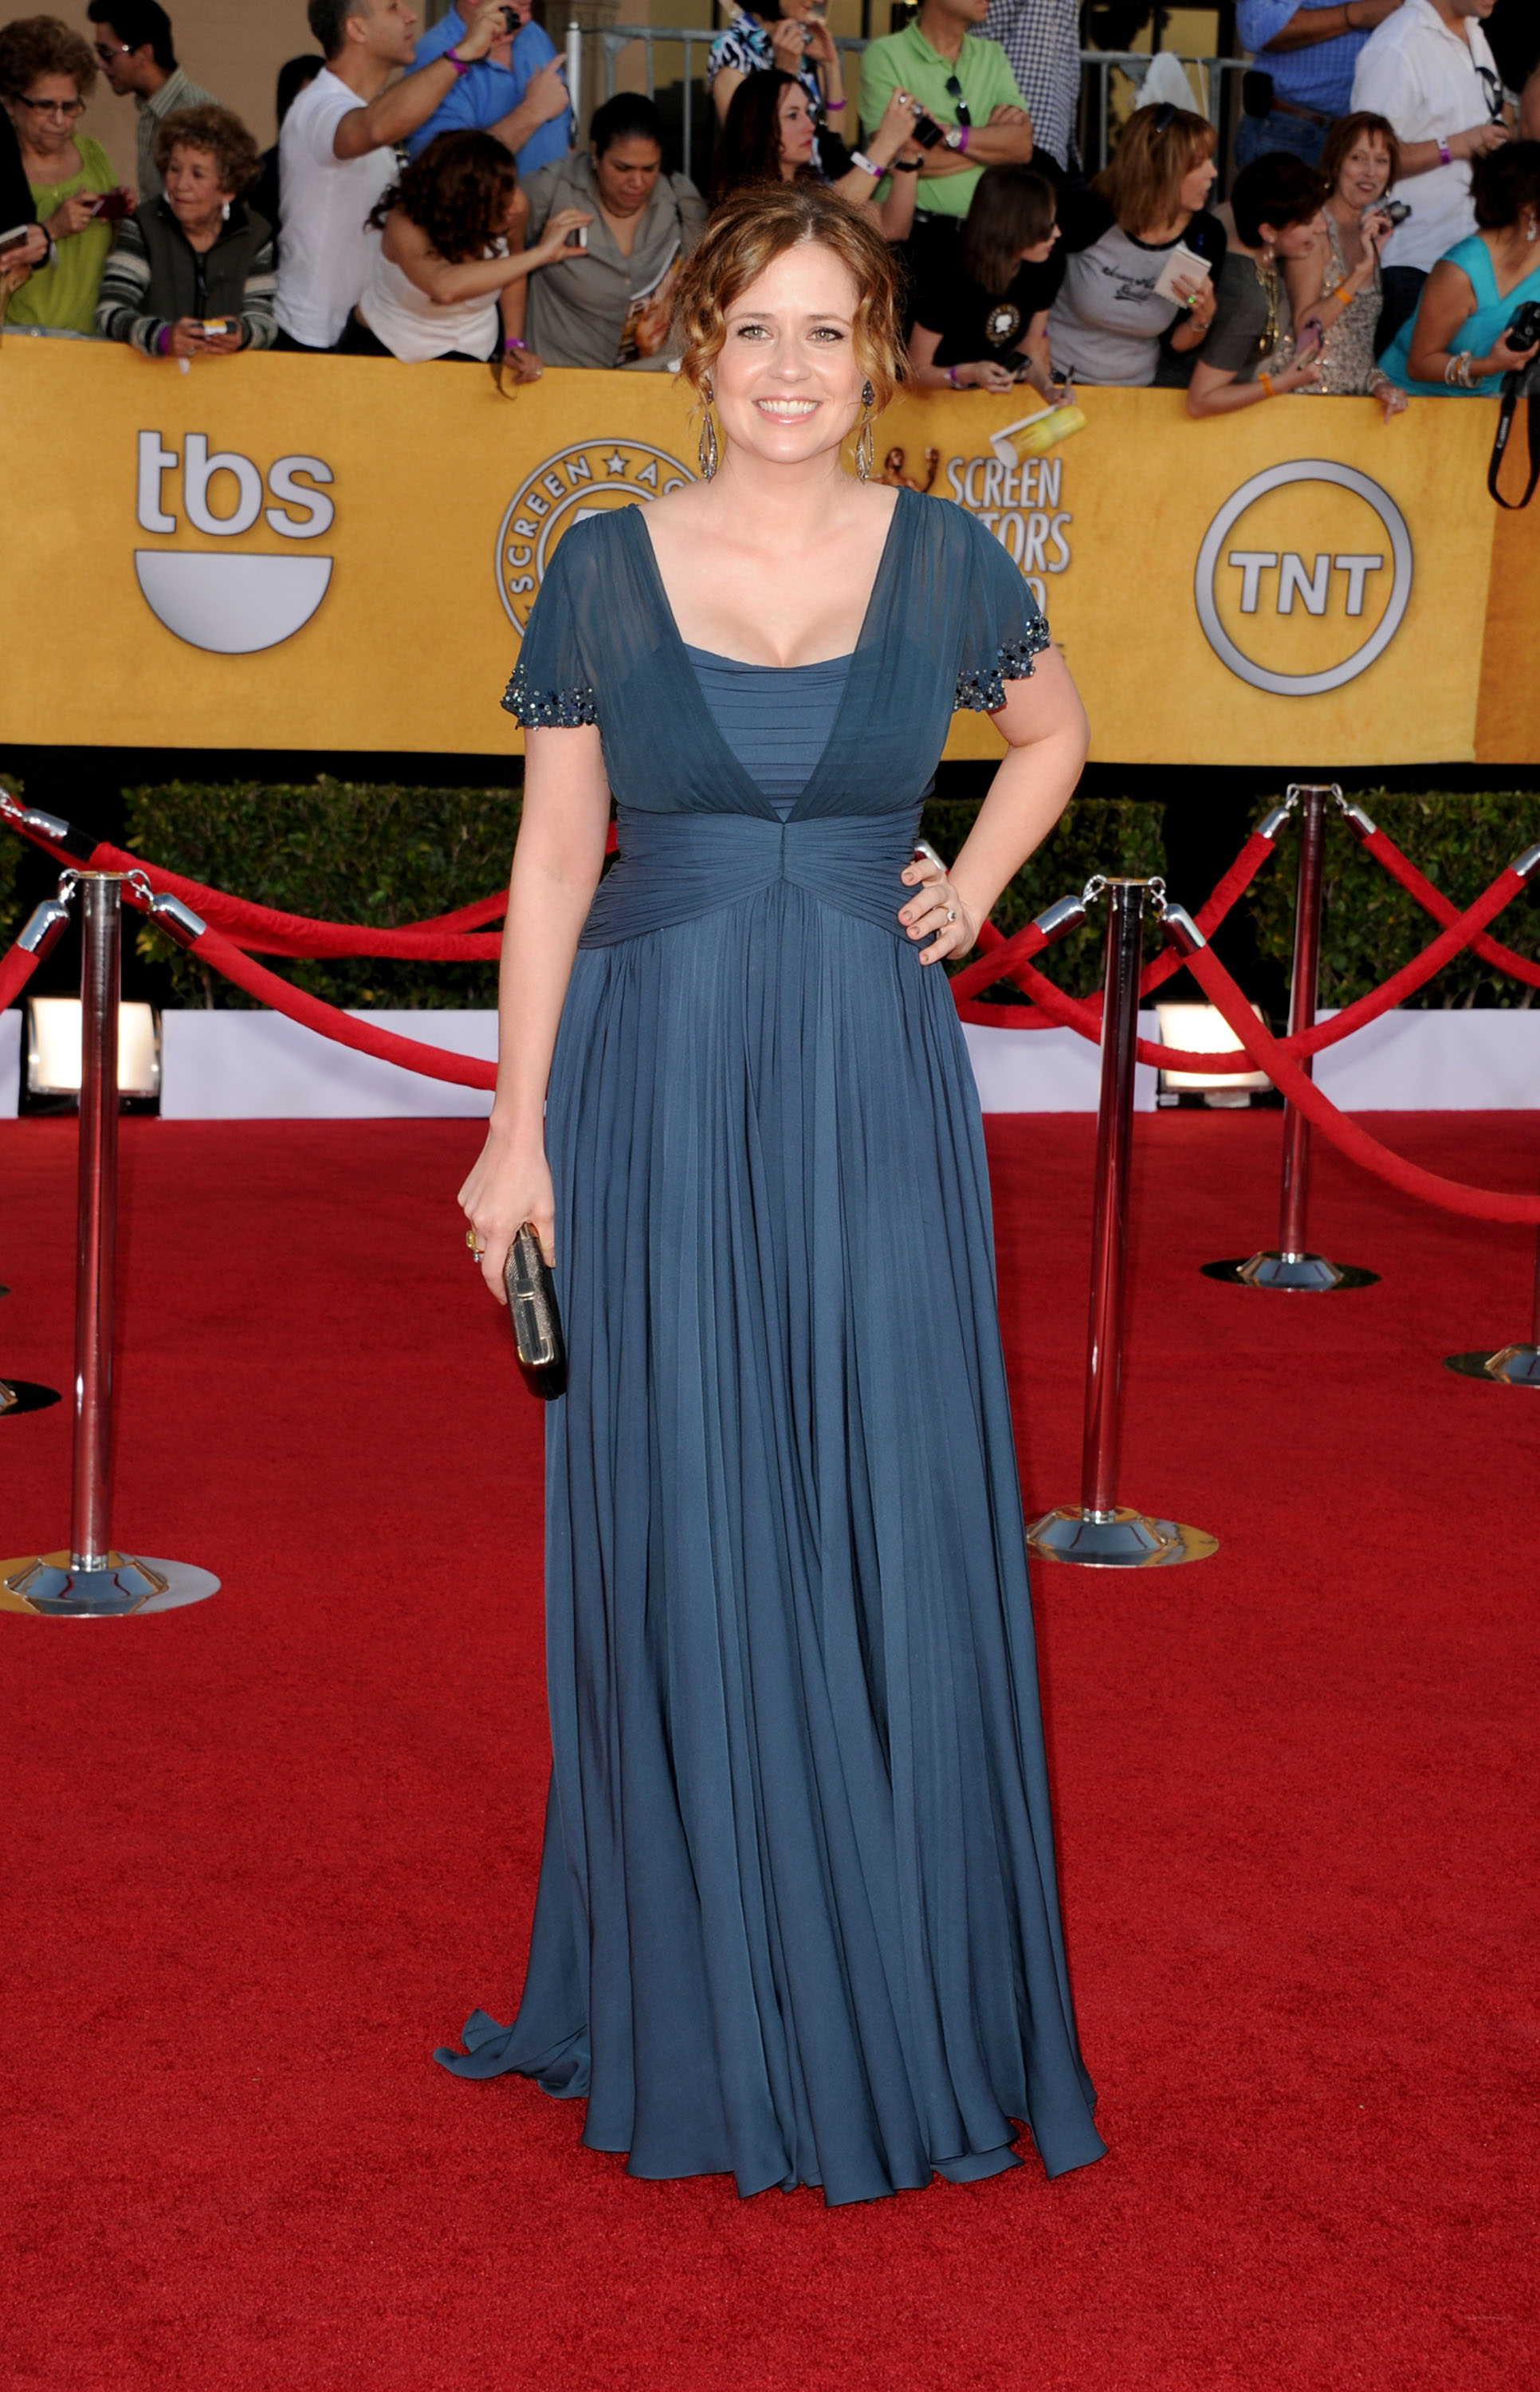 Jenna Fischer at the SAG Awards